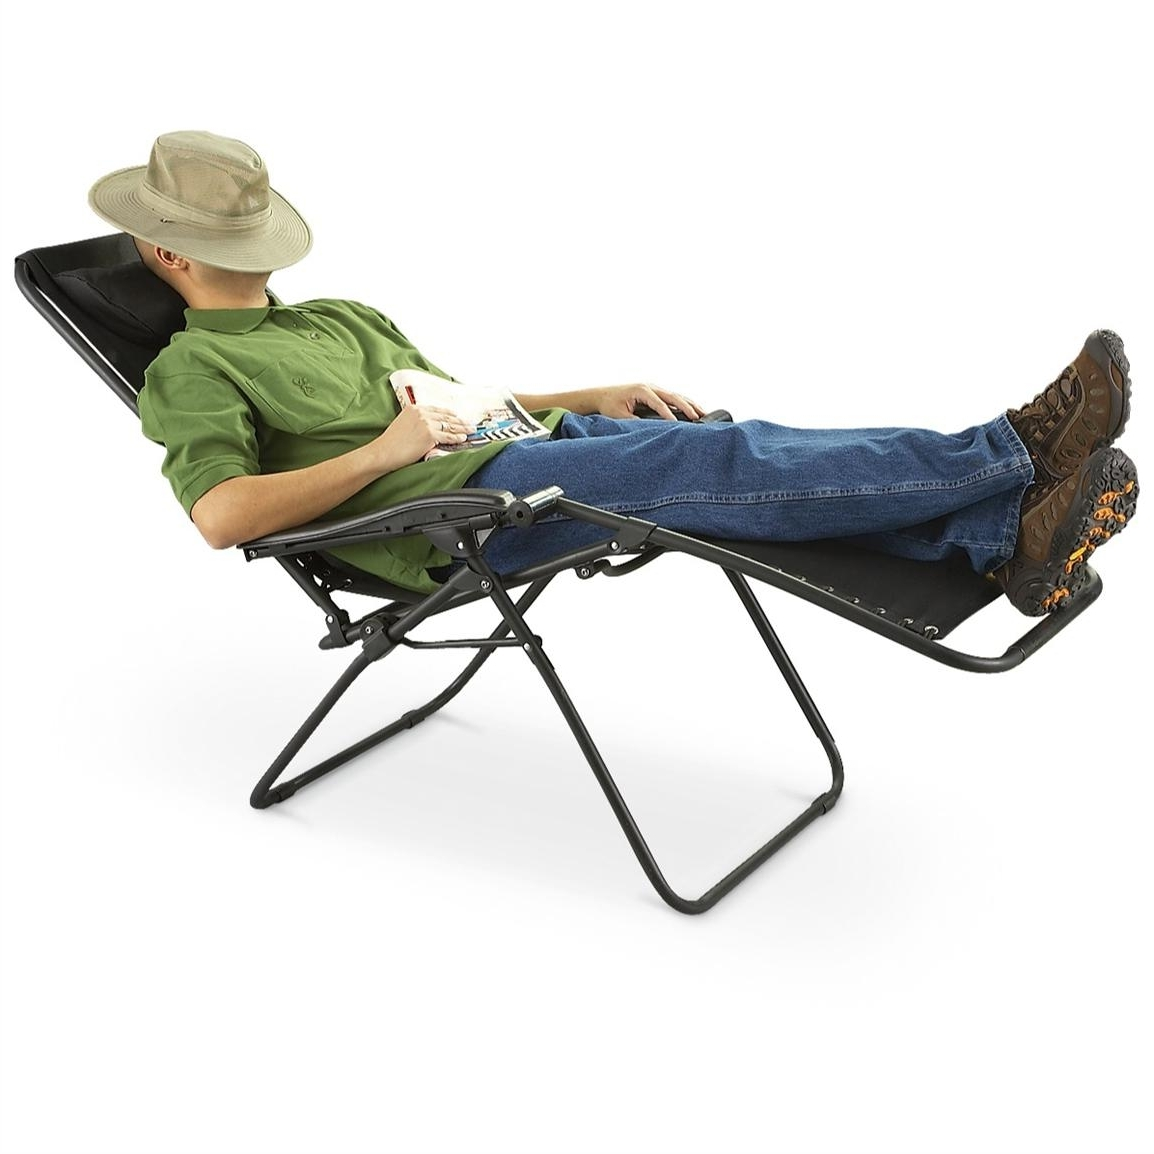 Zero Gravity Chaise Lounge Chairs Throughout Most Recently Released Zero Gravity Lounge Chair – $ (View 14 of 15)